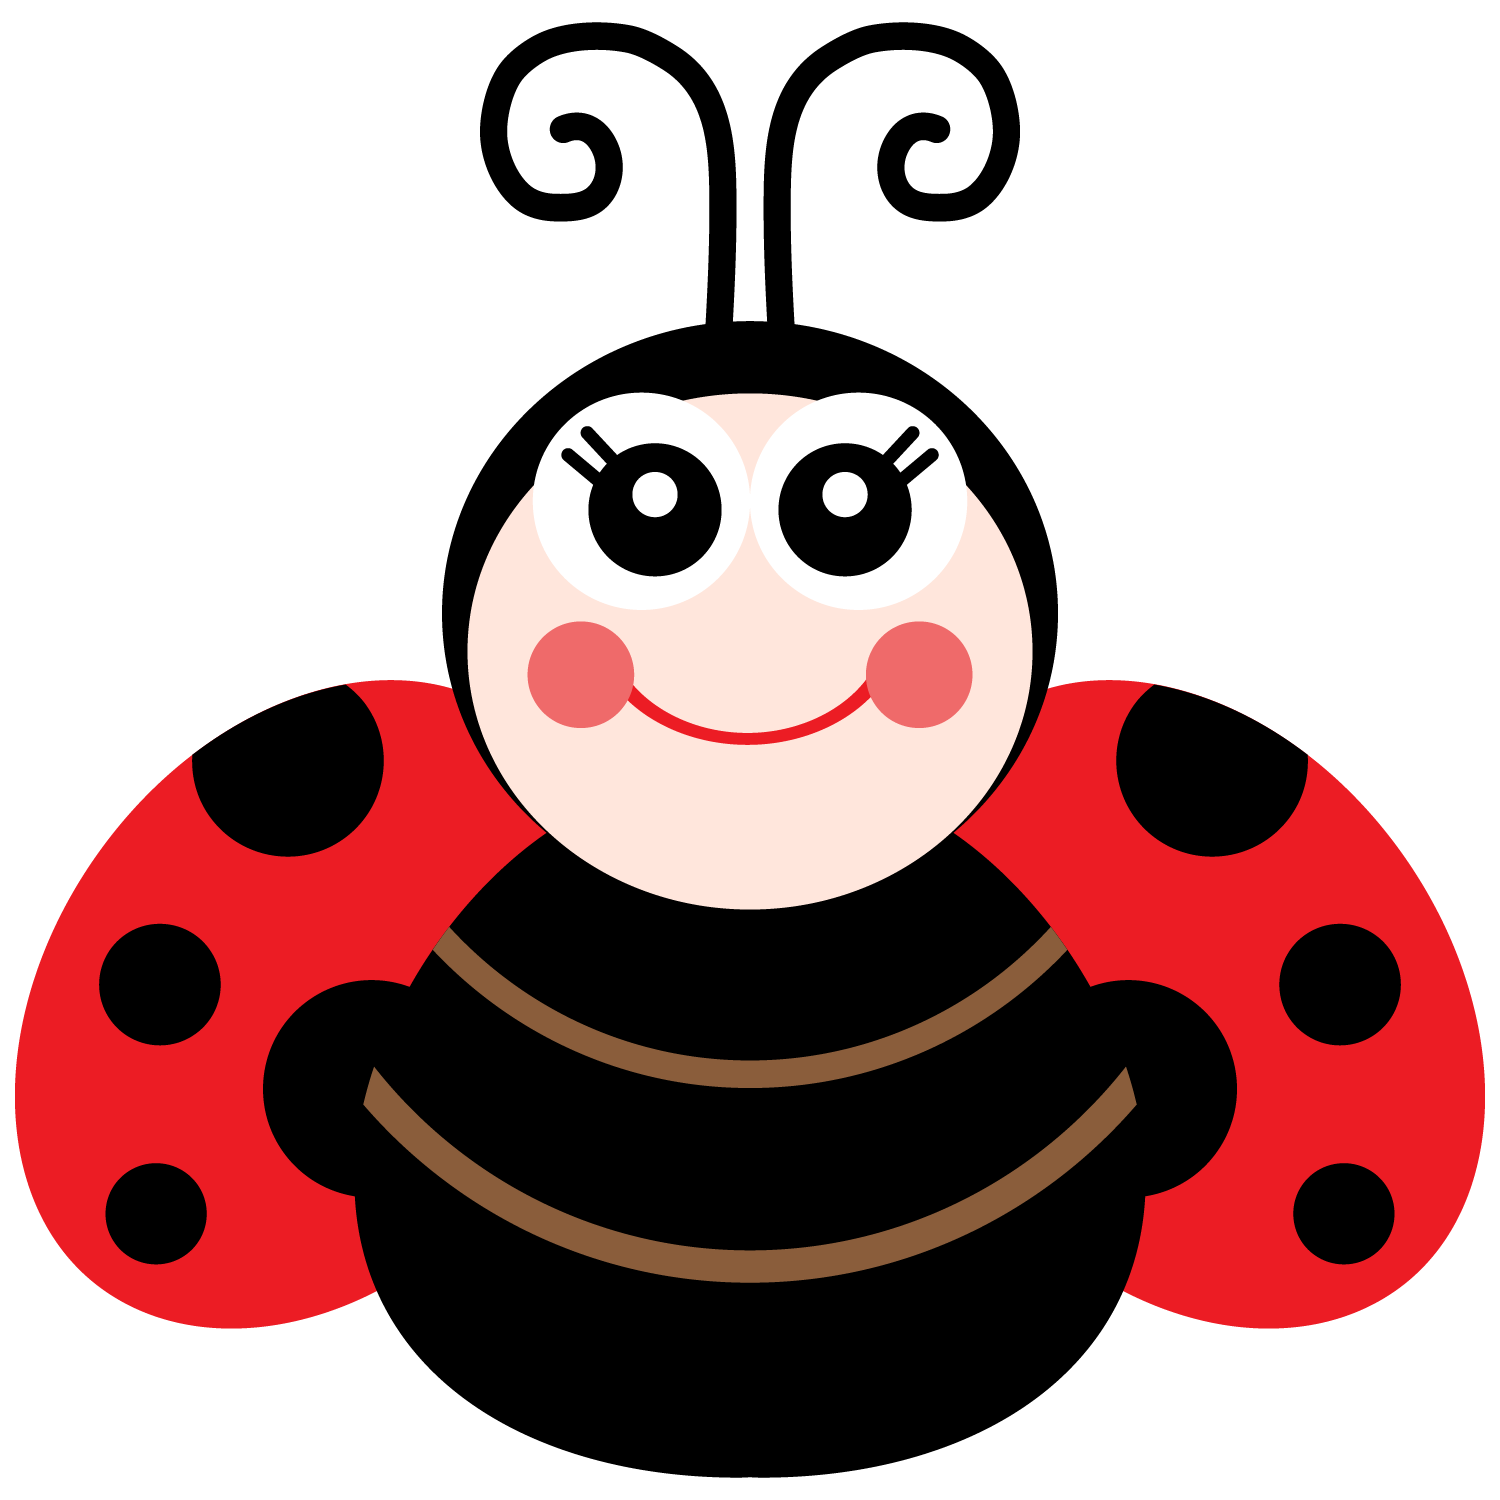 Ladybug clipart classroom decoration. Pin by ion ionela